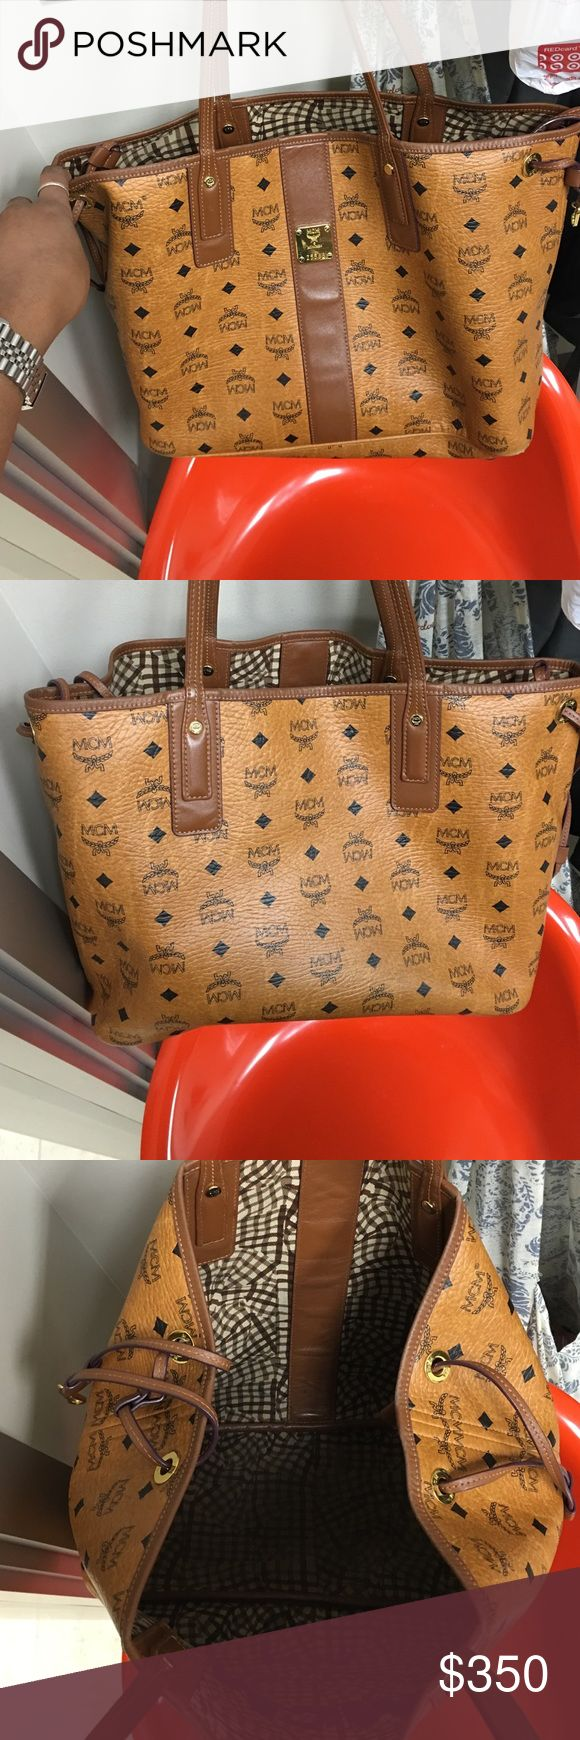 MCM brand handbag MCM brand handbag medium size condition 9/10. the pouchette/wallet that comes with it has already been sold. contact me for any questions concerns or more photos MCM Bags Shoulder Bags